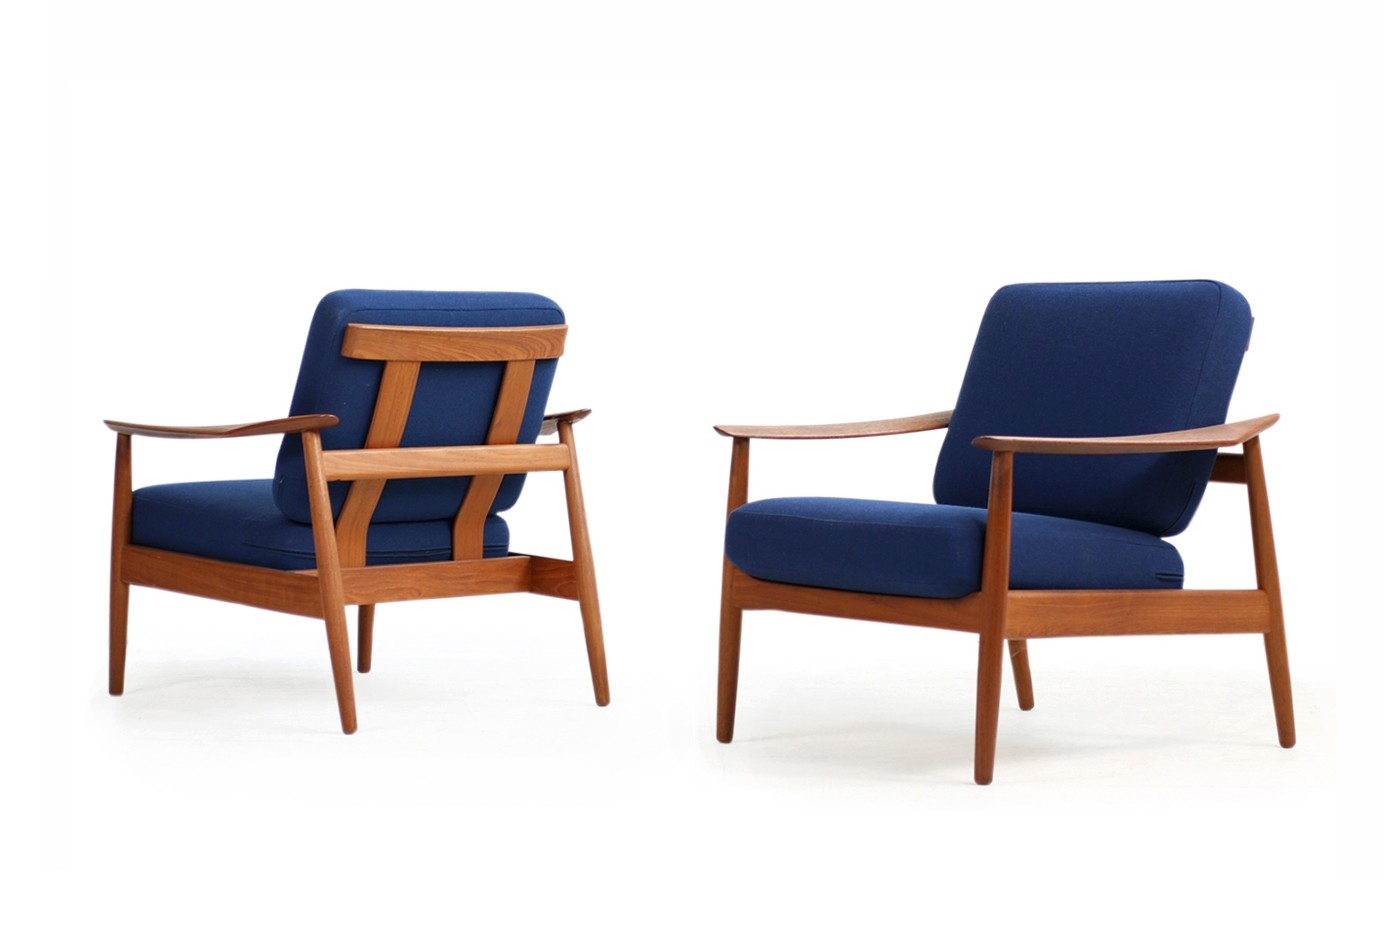 Arne Vodder Sessel Arne Vodder 1960s Teak Easy Chairs Mod 164 Danish Modern Design